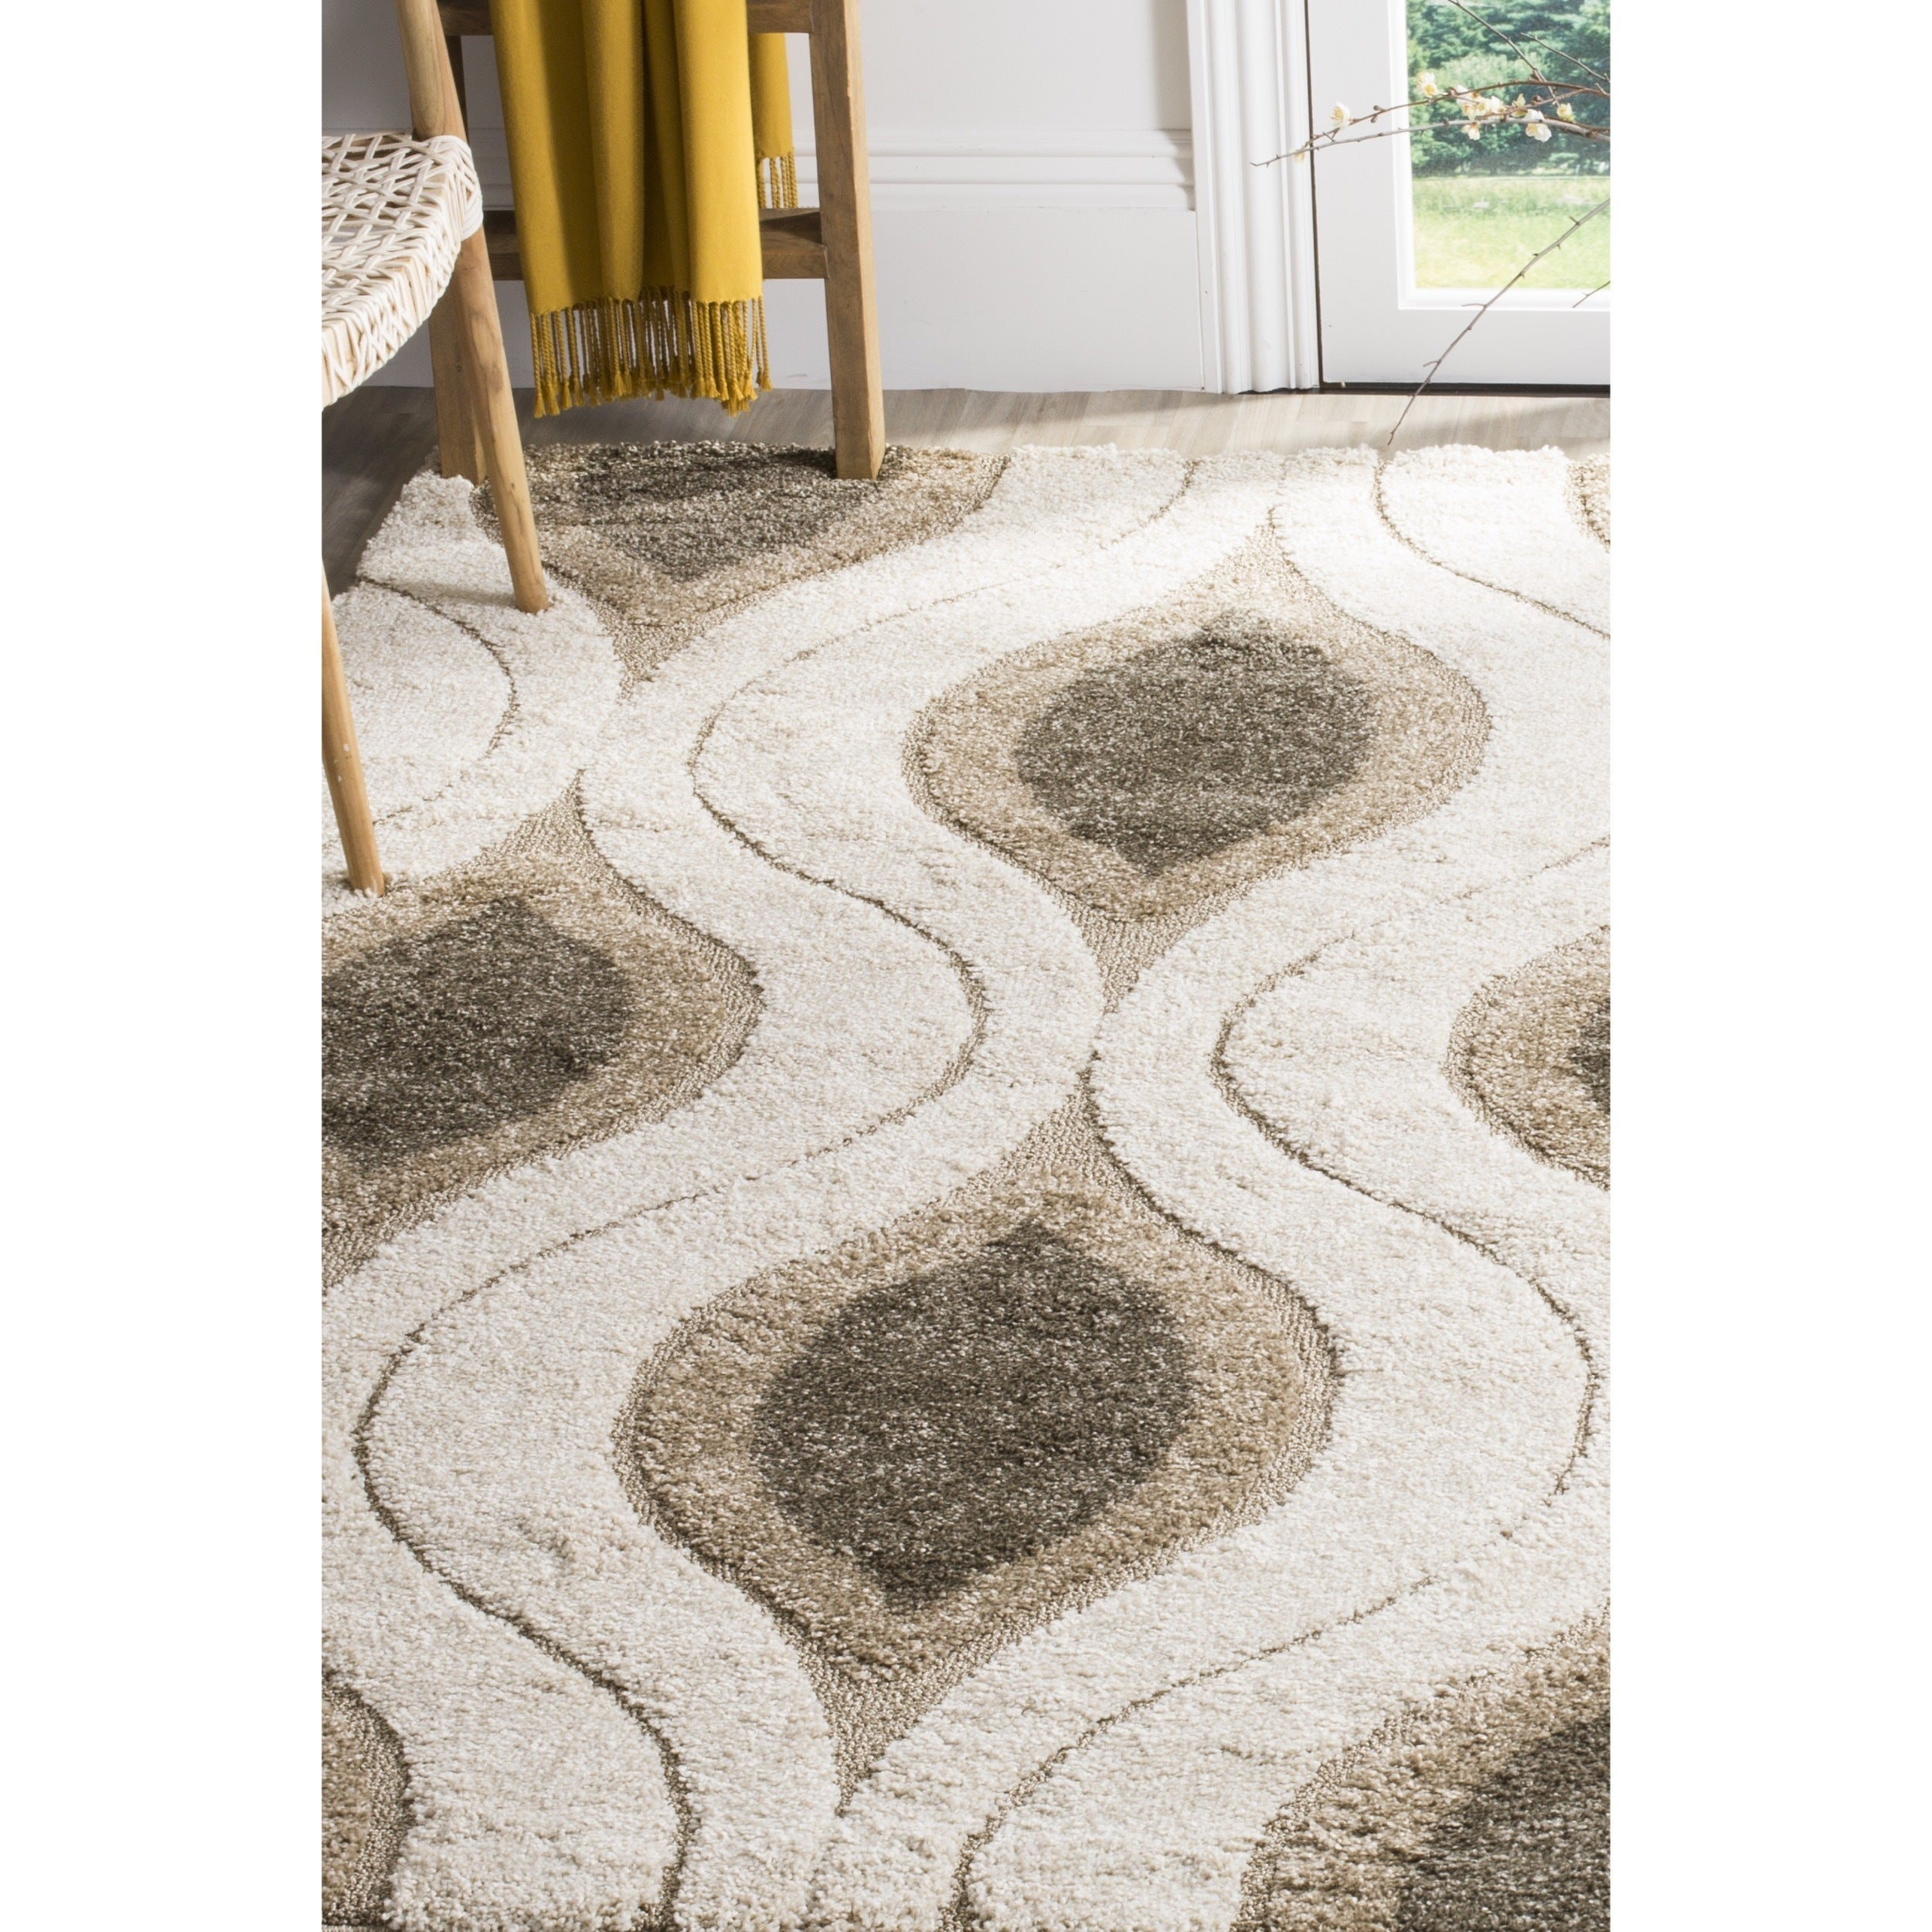 Image result for Safavieh SG461-1179-24 Florida Shag Collection Cream/Smoke Area Rug, 2-Feet 3-Inch by 4-Feet